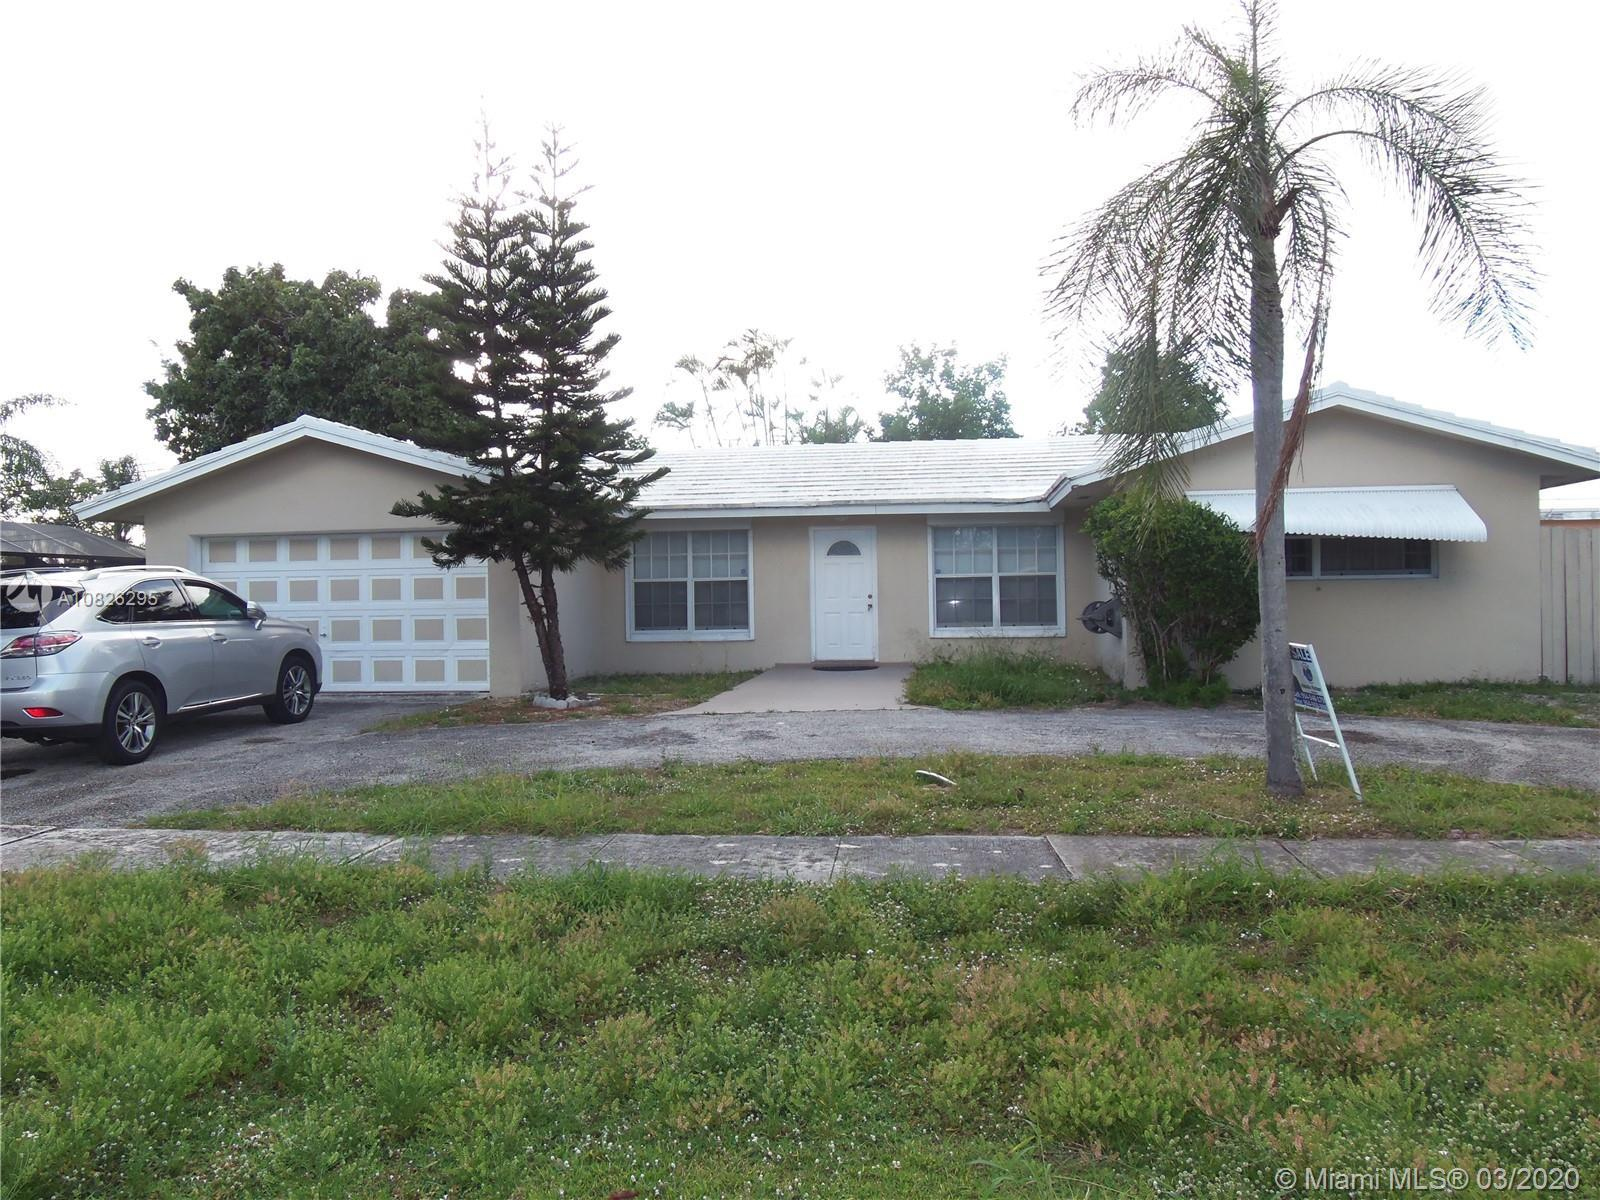 SPACIOUS 3 BEDROOMS 3 BATHROOMS SINGLE FAMILY HOME LOCATED IN THE HEART OF WEST PALM BEACH. WALK-IN